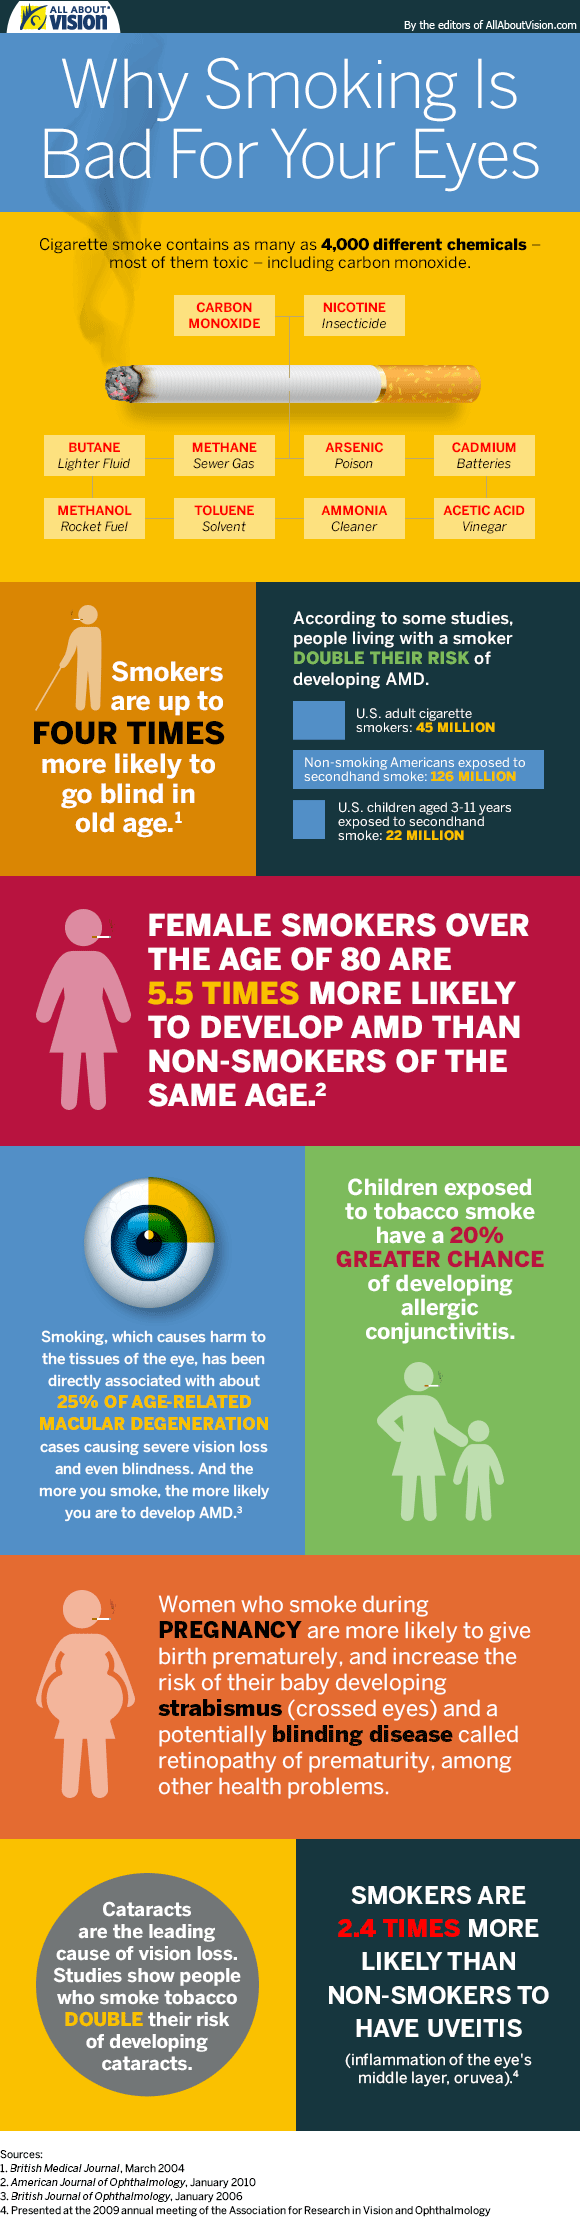 why is smoking bad for your eyes #infographic